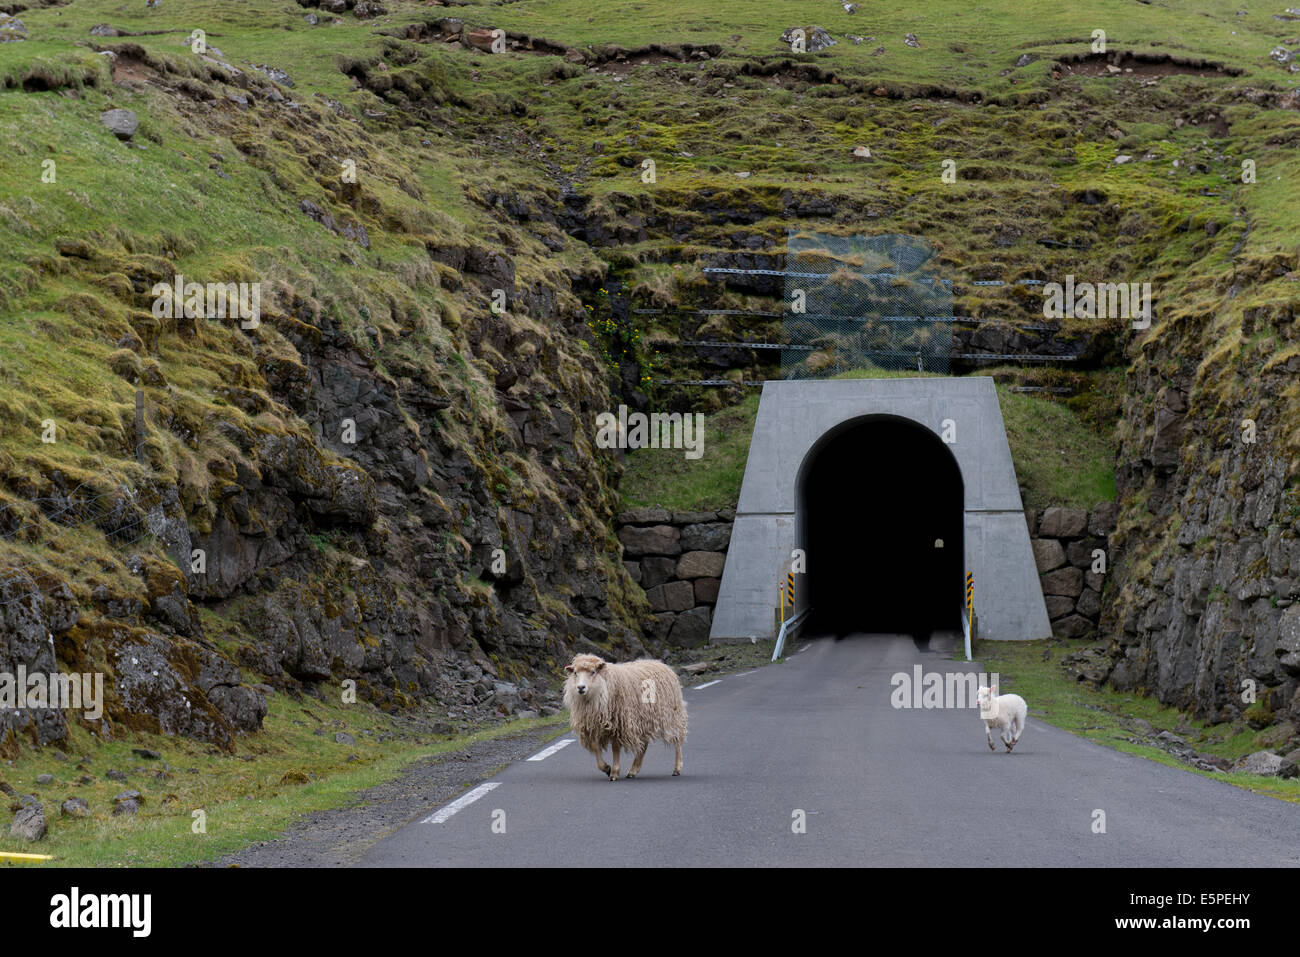 Sheep in front of the single-track tunnel between Husar and Mikladalur, Kalsoy, Faroe Islands, Denmark - Stock Image